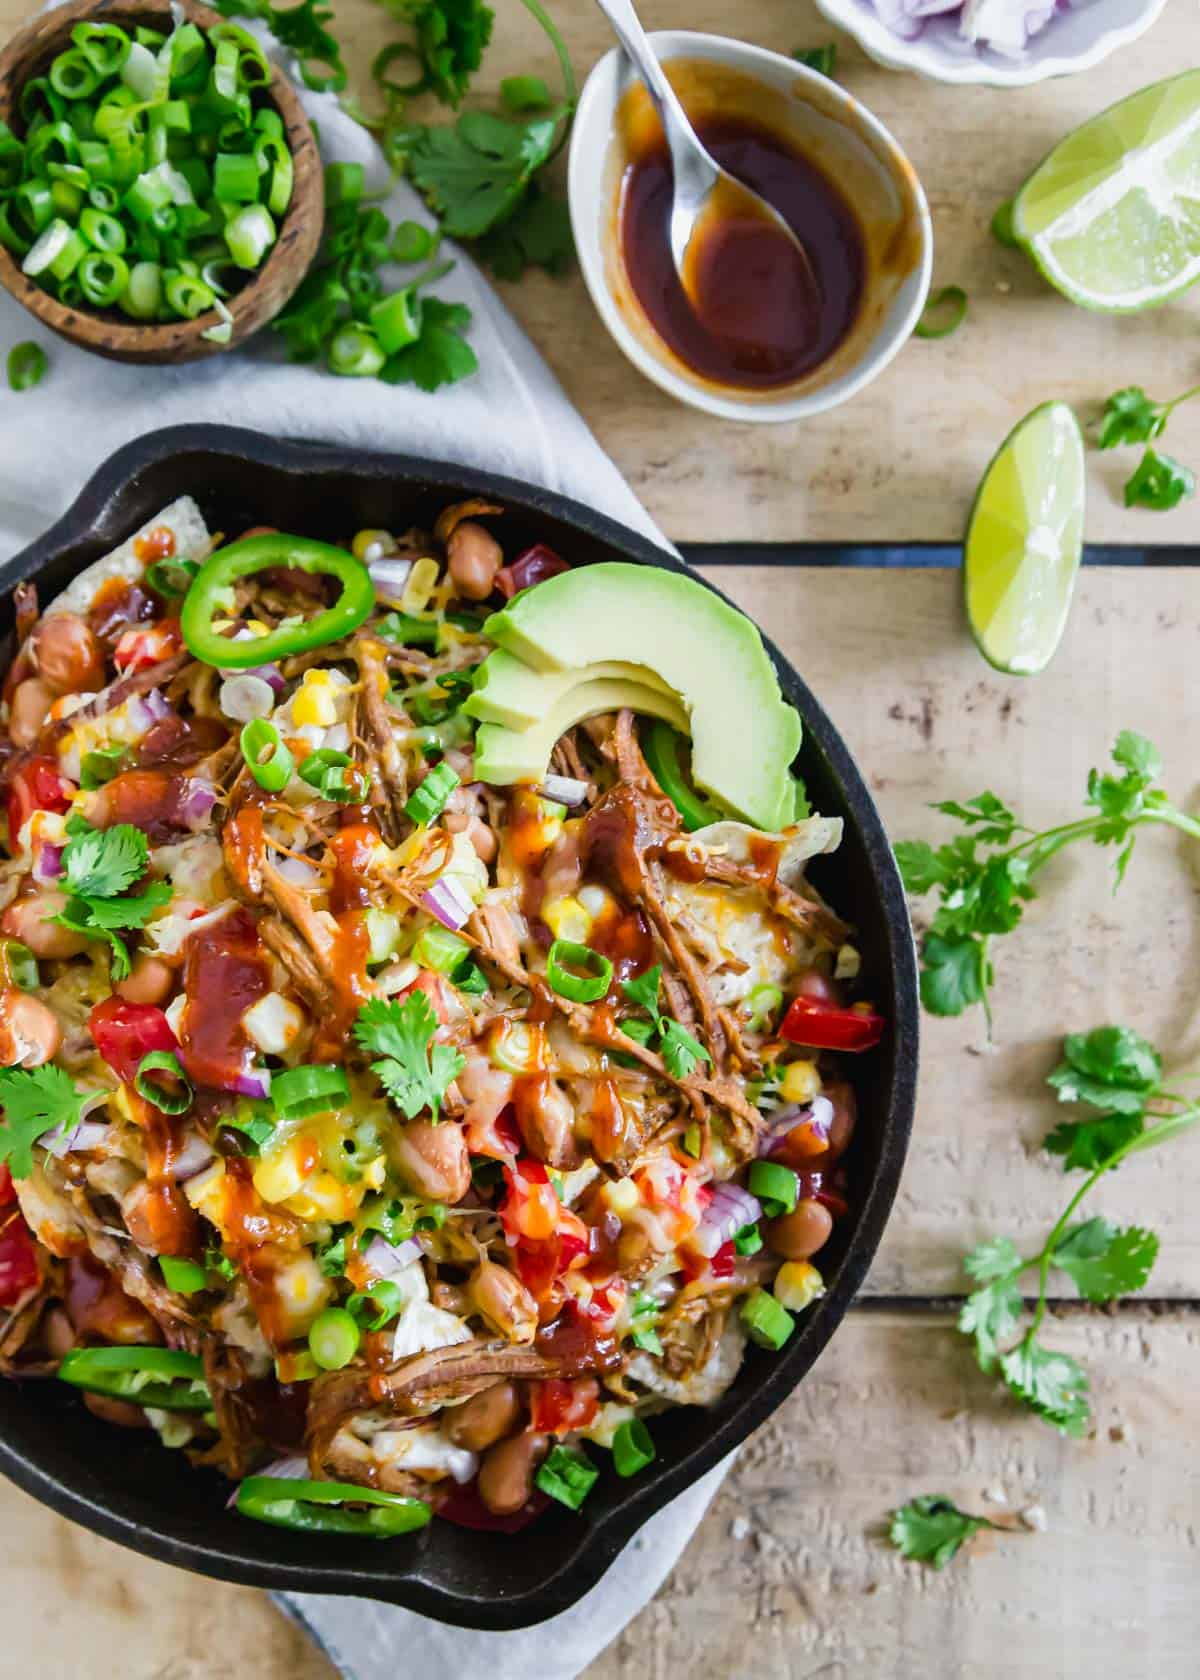 Need a recipe to use up brisket leftovers? Try these simple yet incredibly delicious brisket nachos, they won't disappoint!